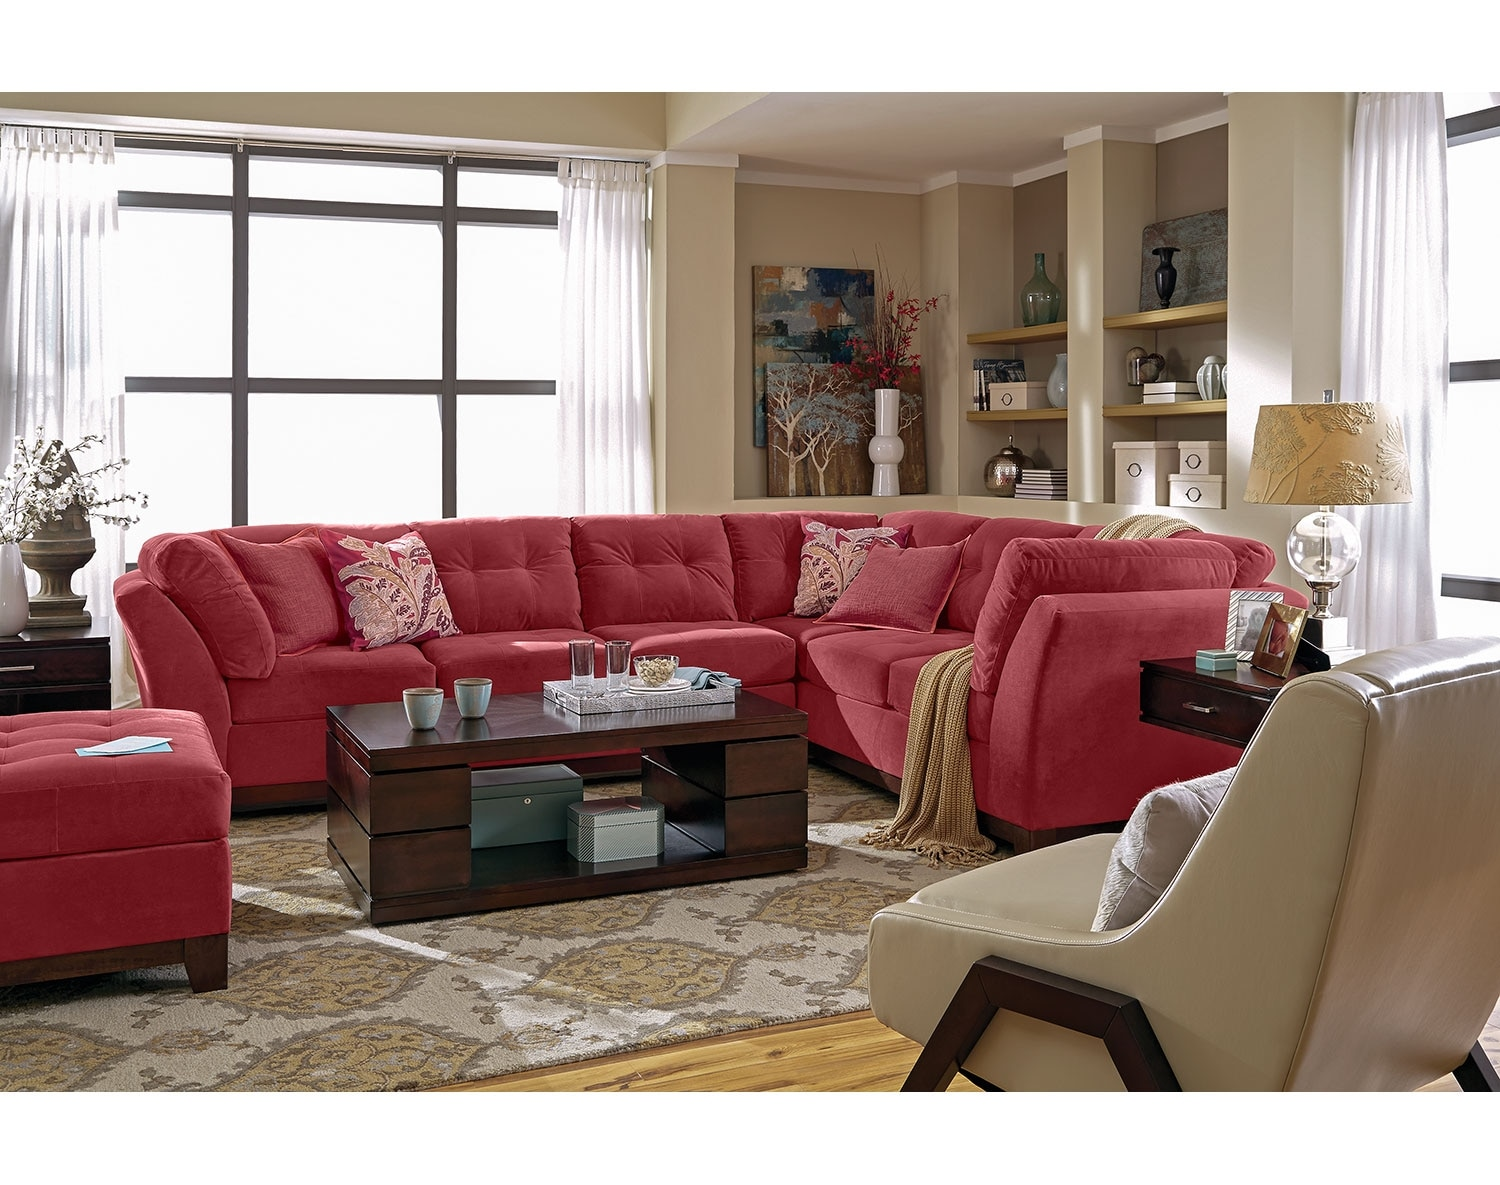 The Solace Sectional Collection - Poppy